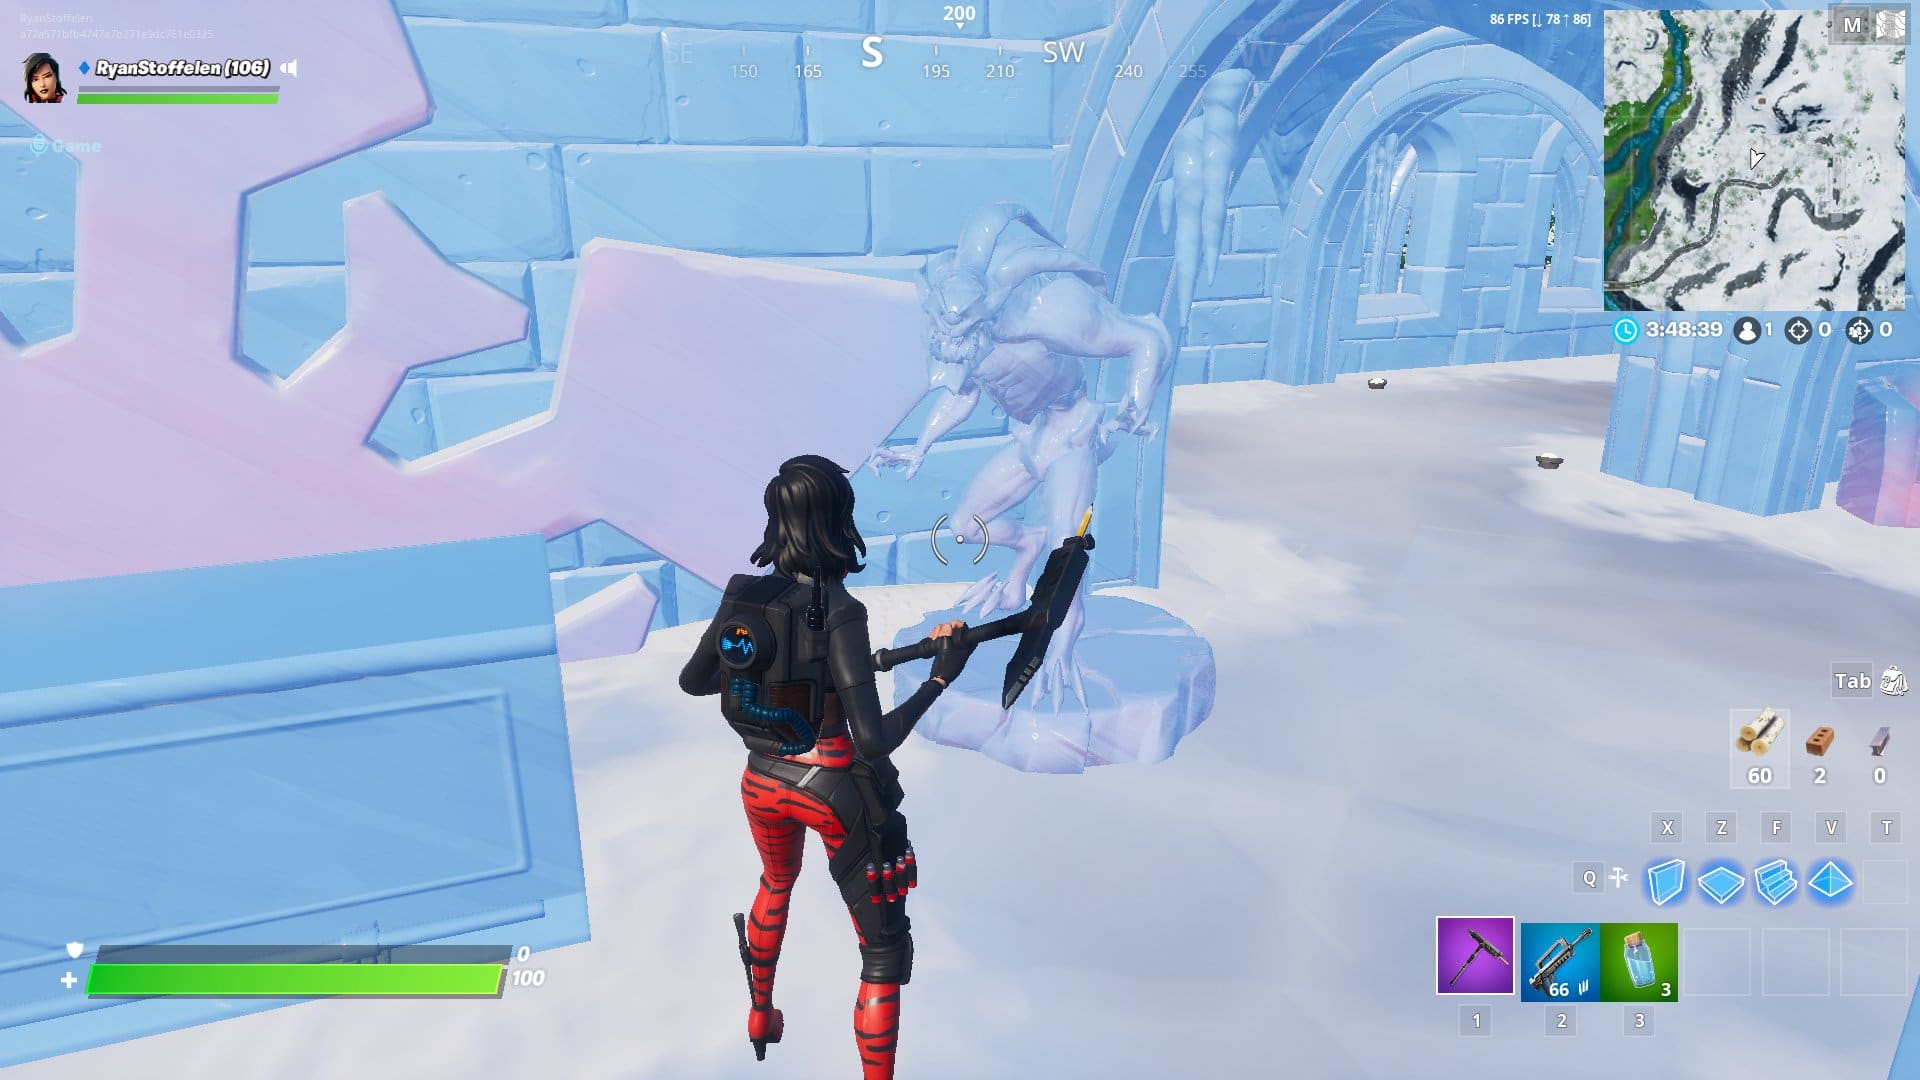 Fortnite v11.30 Map Changes - Frozen The Devourer Sculpture